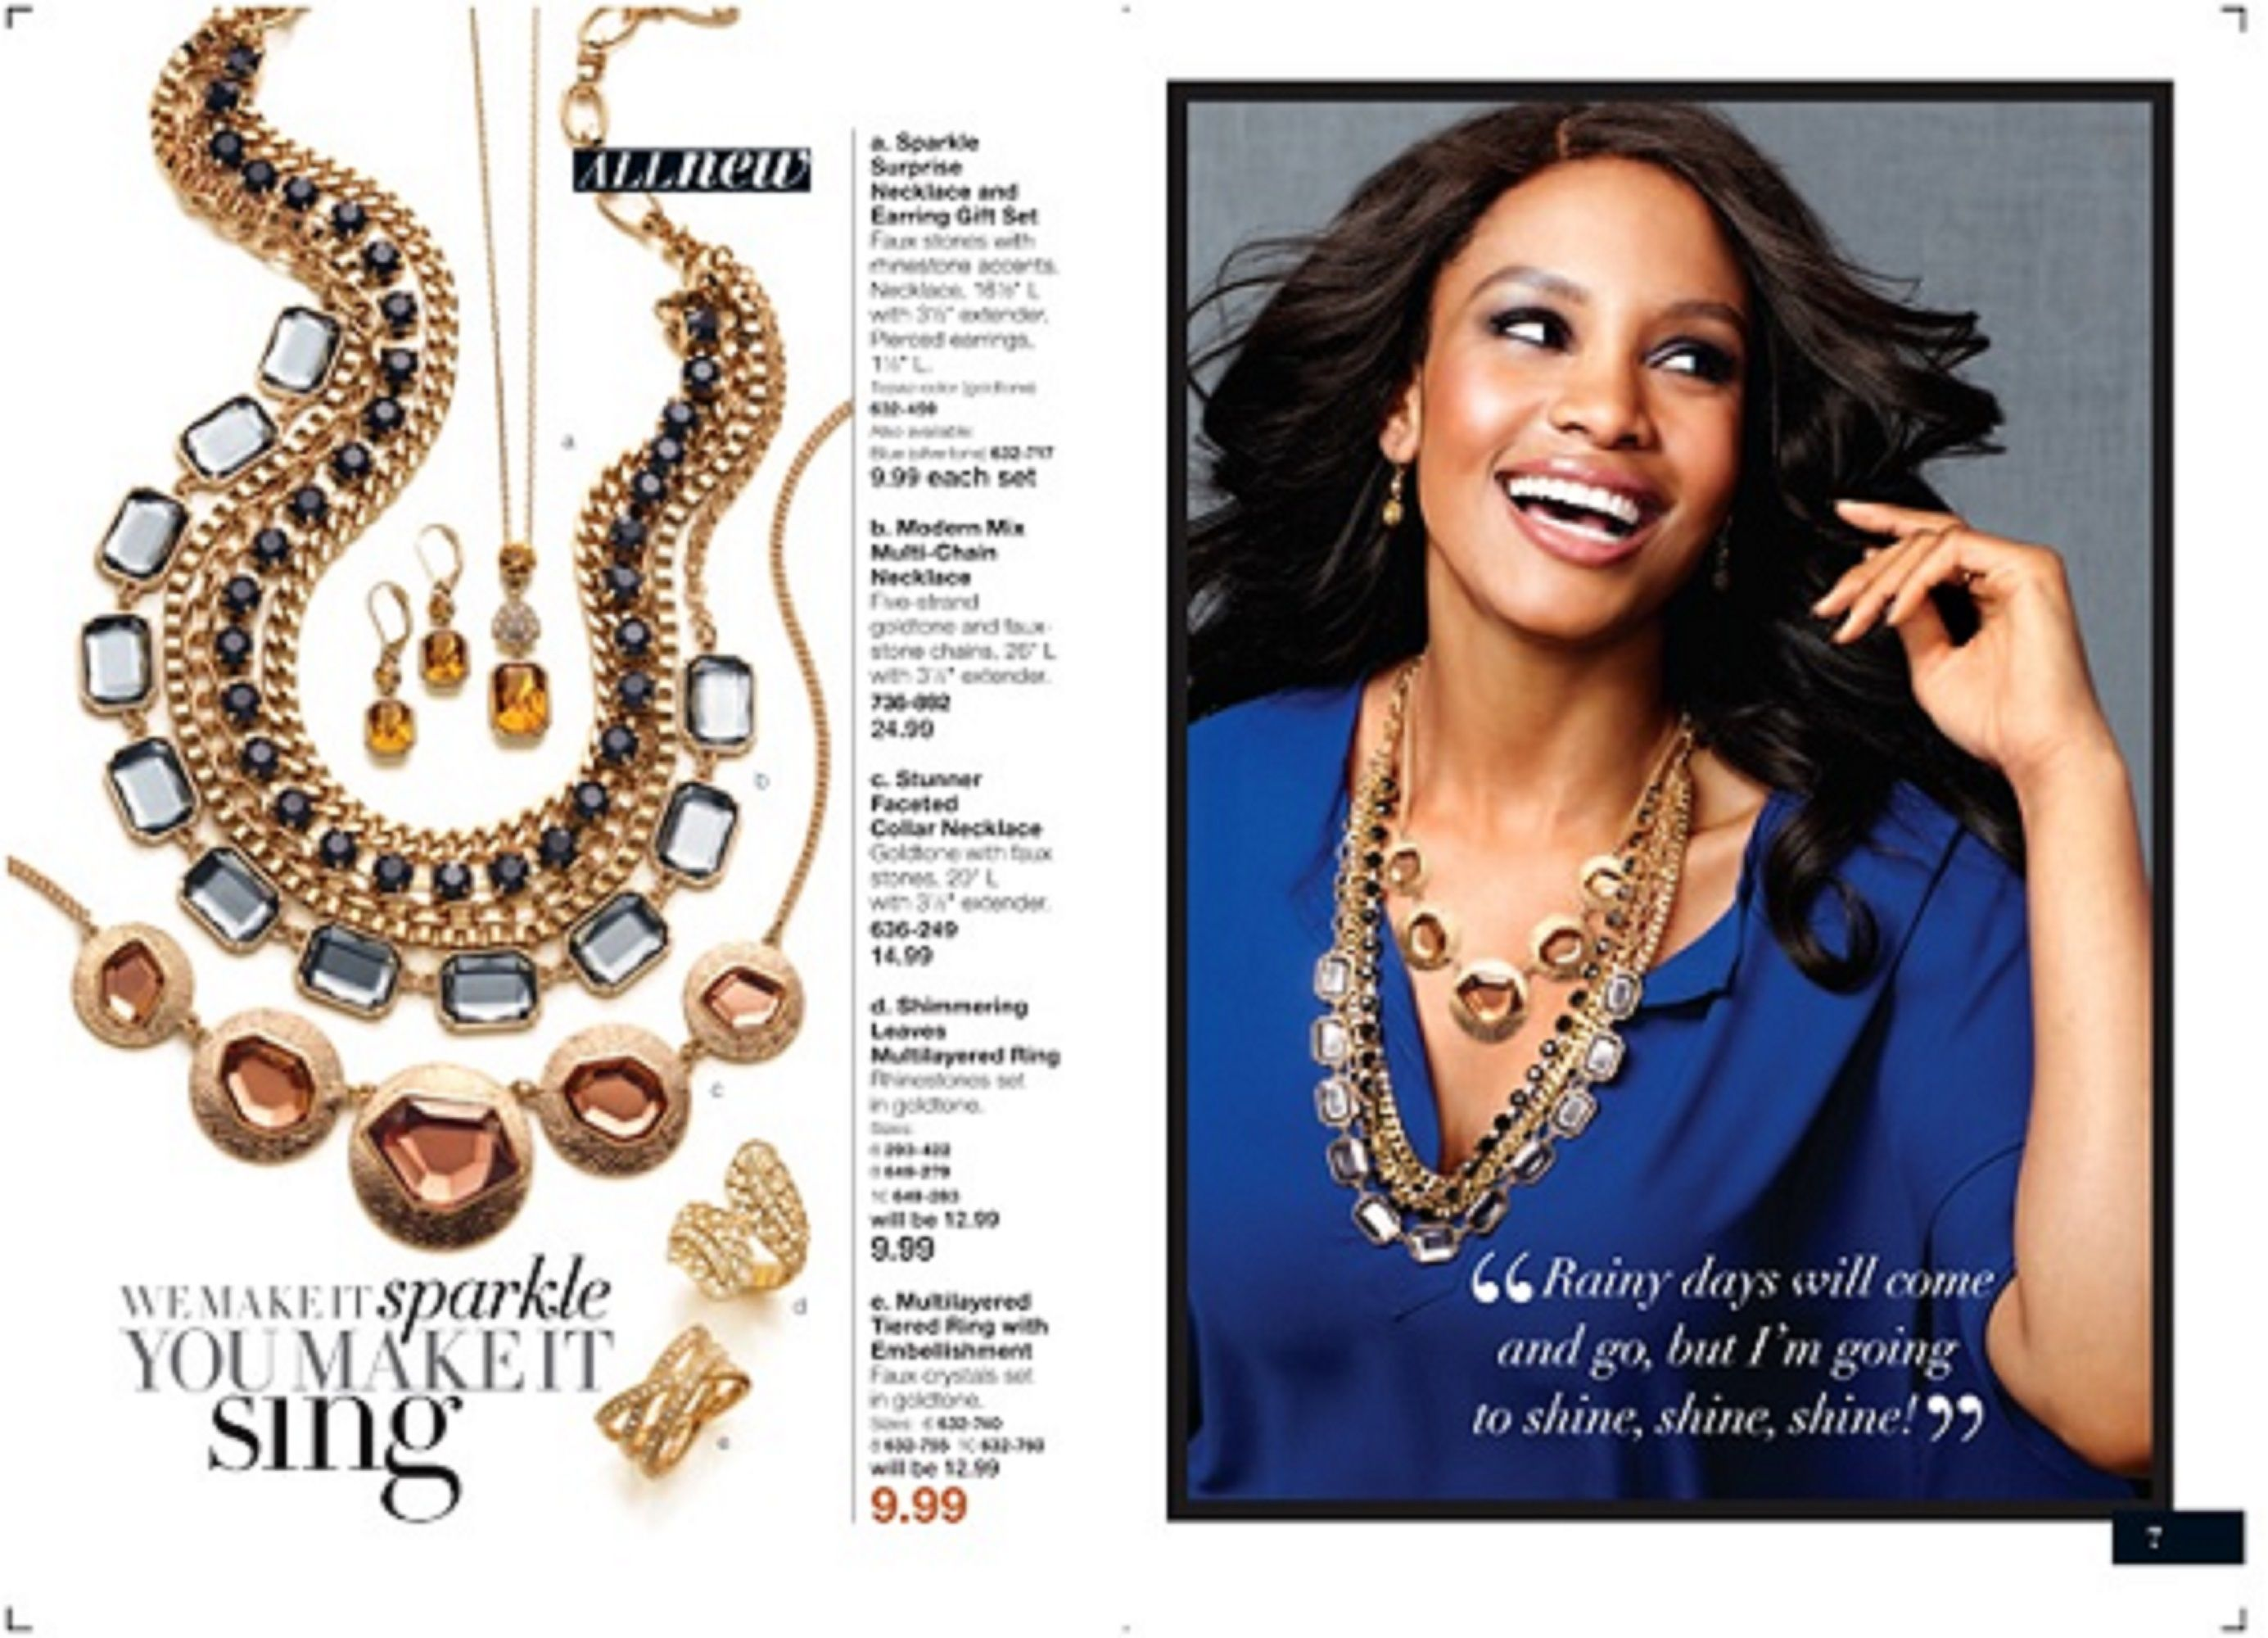 Great Jewelry for GREAT prices! Check my site out for the latest fashion www.youravon.com/sblankenship0901